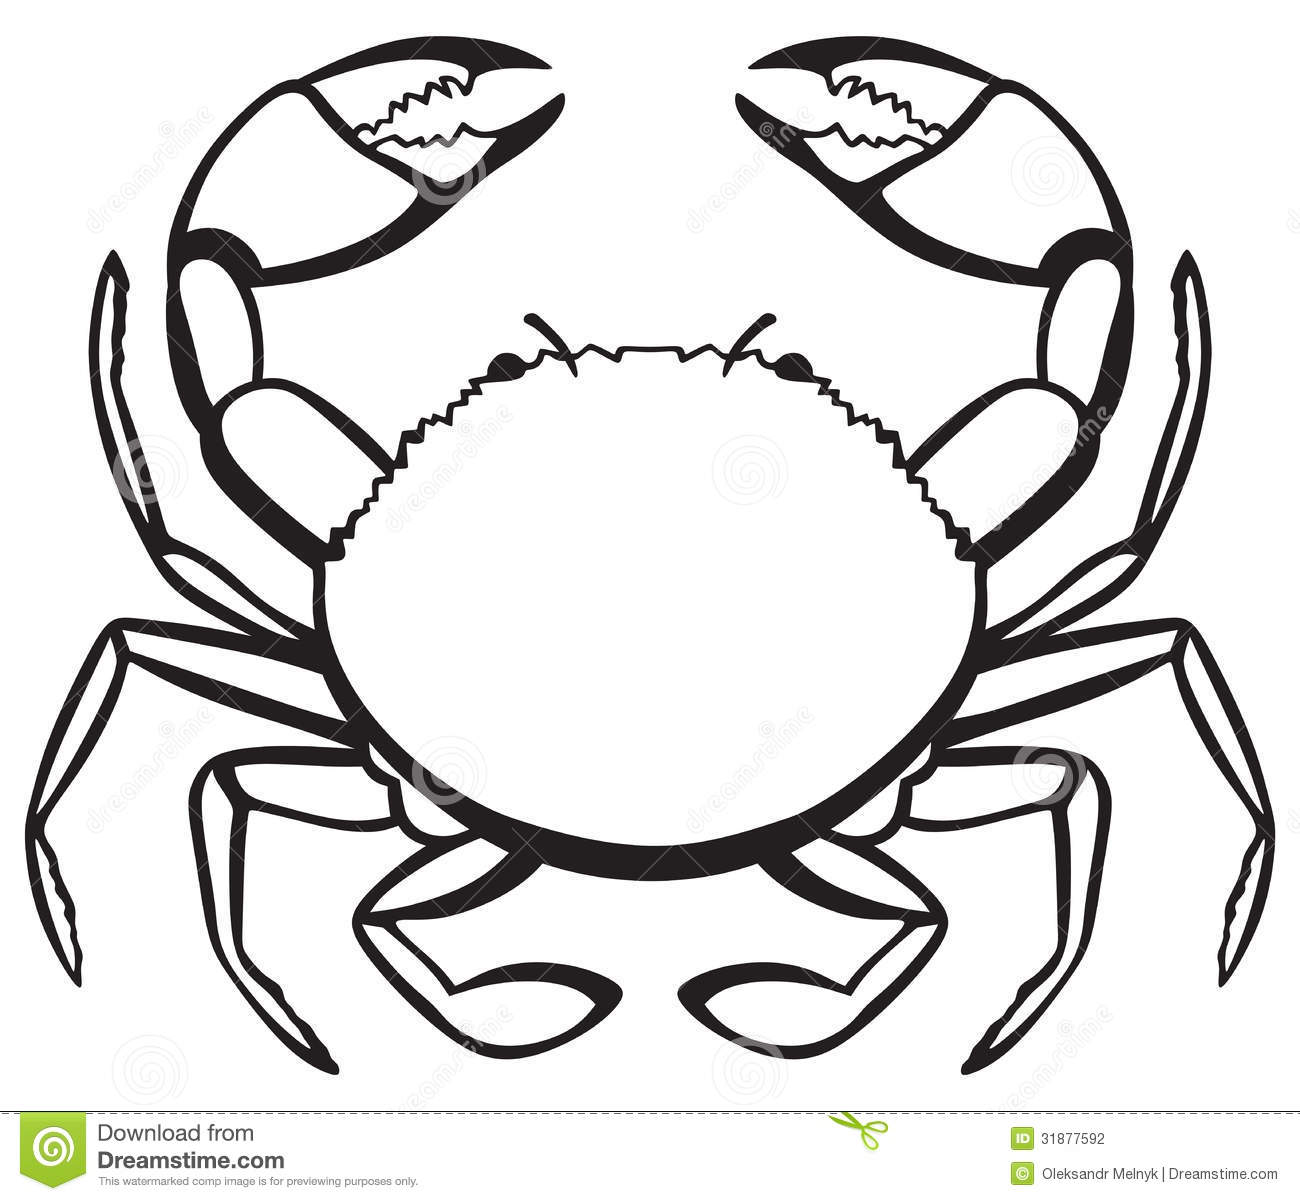 blue%20crab%20clipart%20black%20and%20white